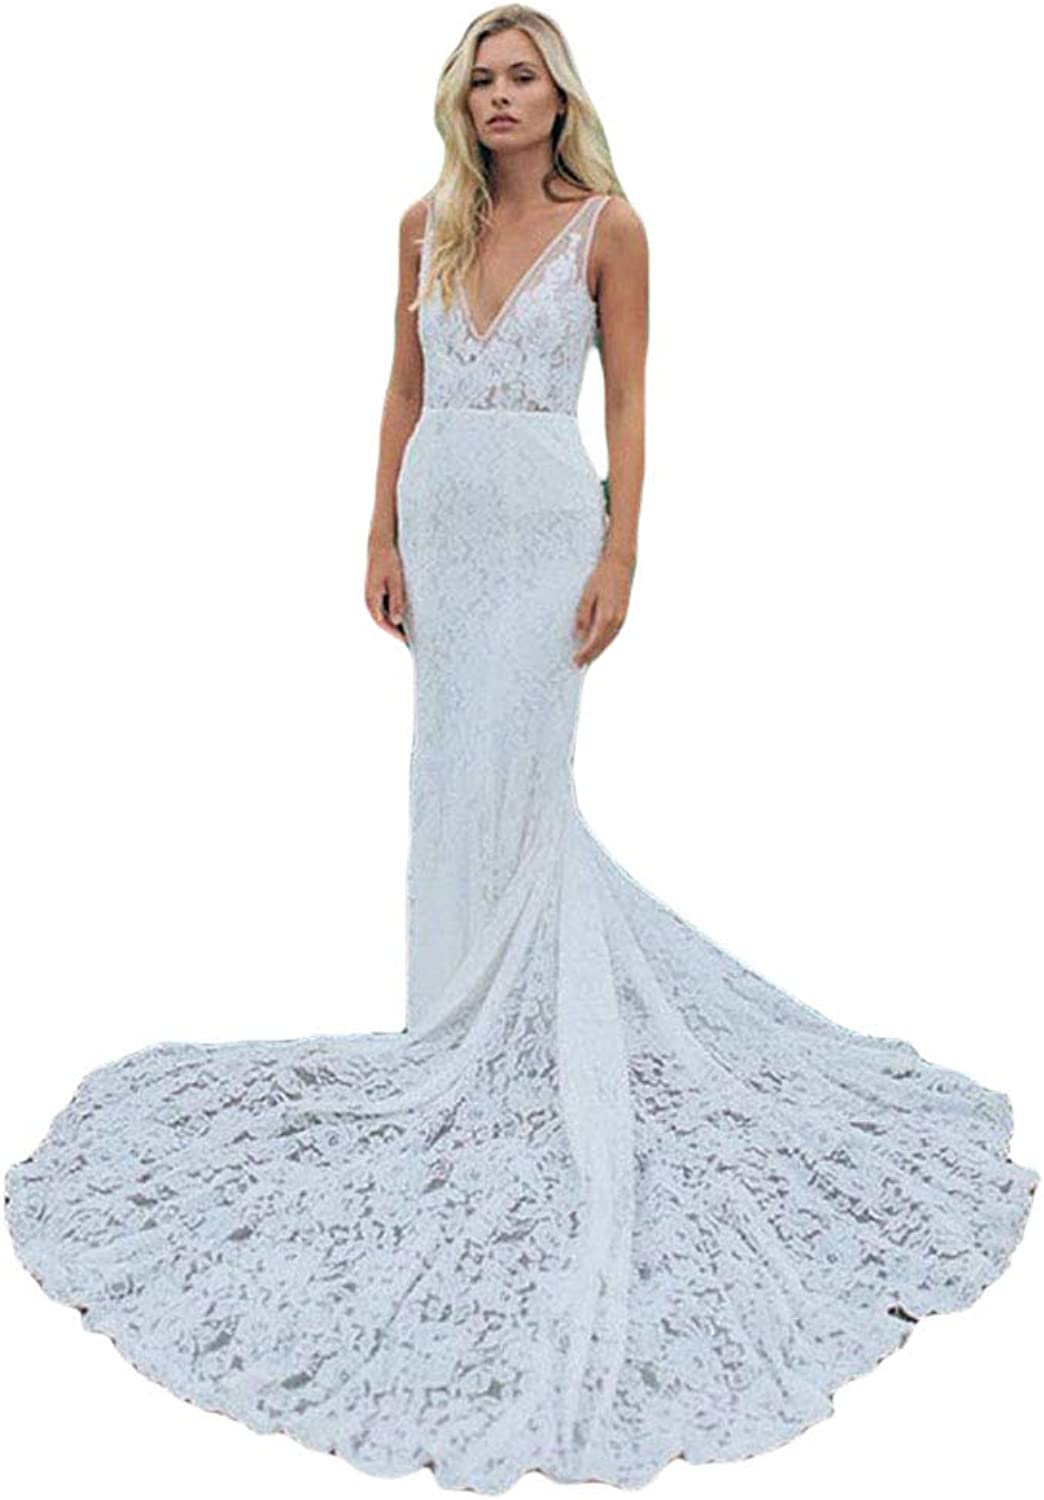 Liyuke Deep VNeck Mermaid Lace Wedding Dresses Backless Long Train Sexy Bridal Dress